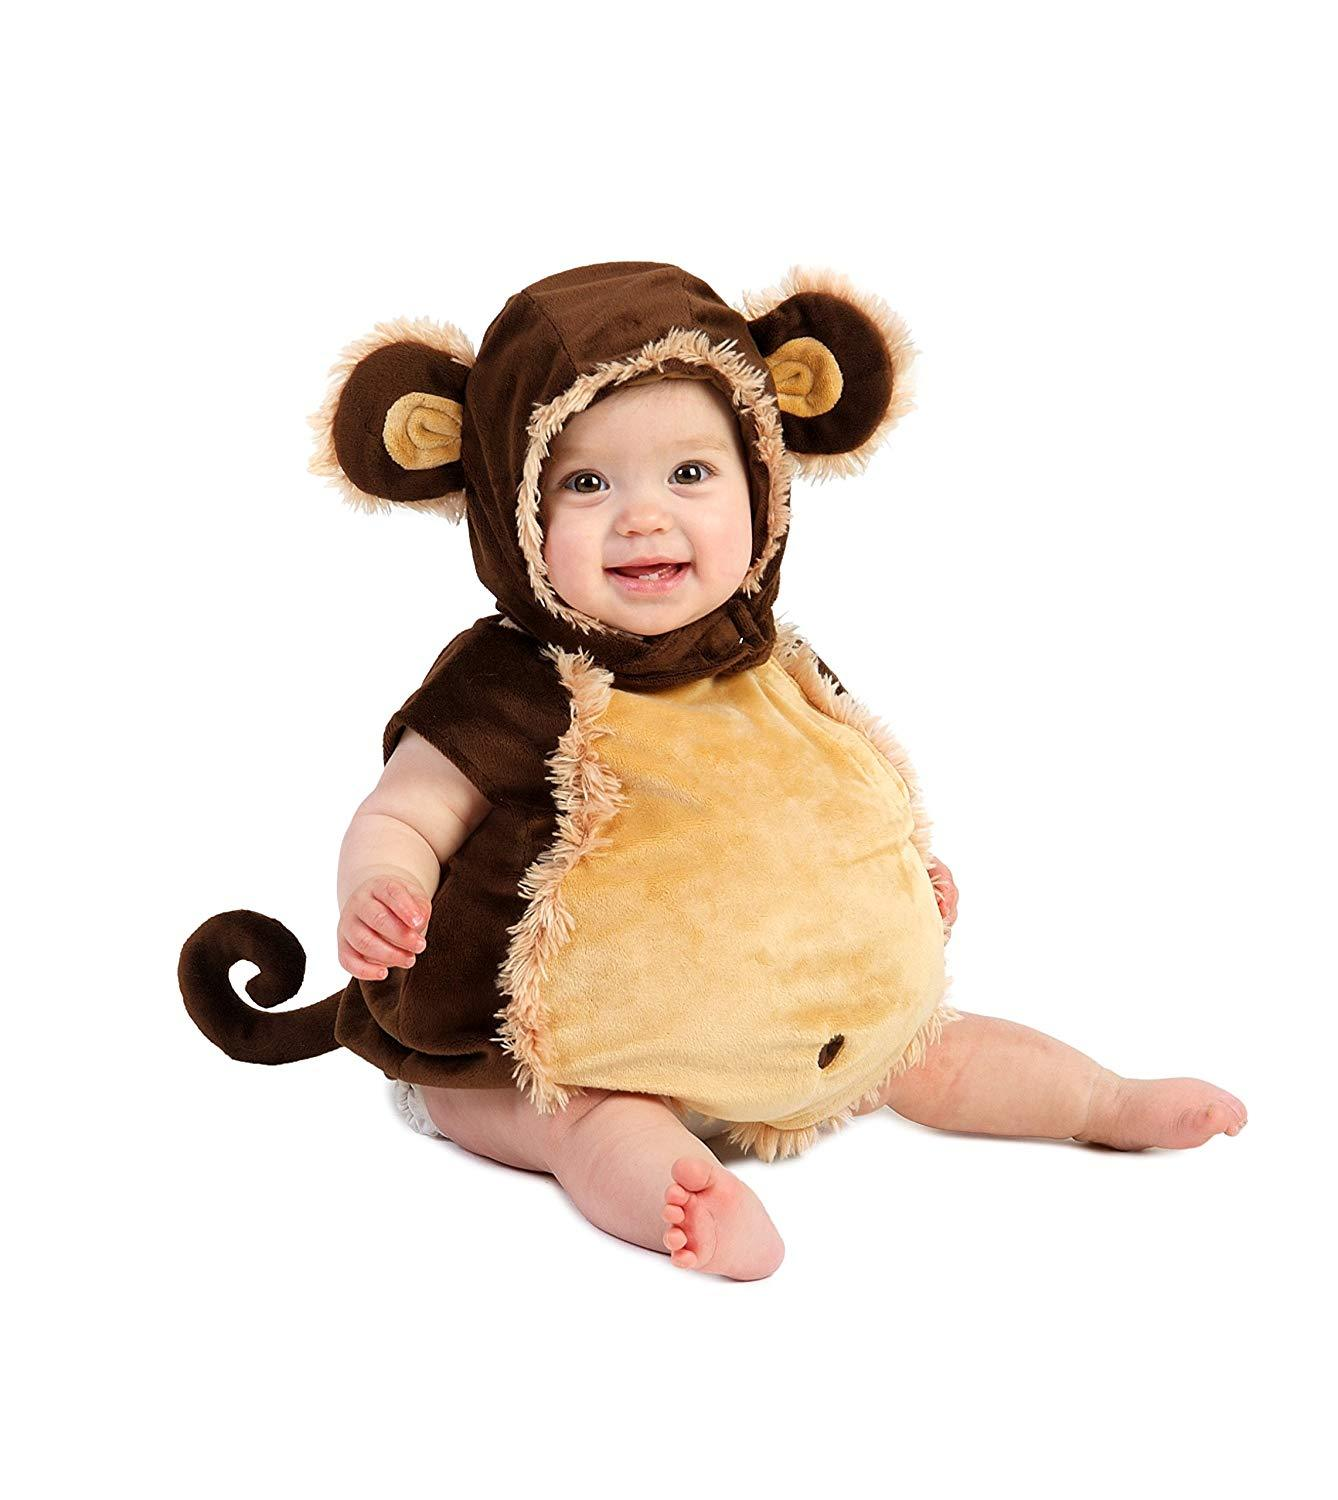 Princess Paradise Baby's Deluxe Melvin the Monkey Costume,Brown/Beige 6-12 Month